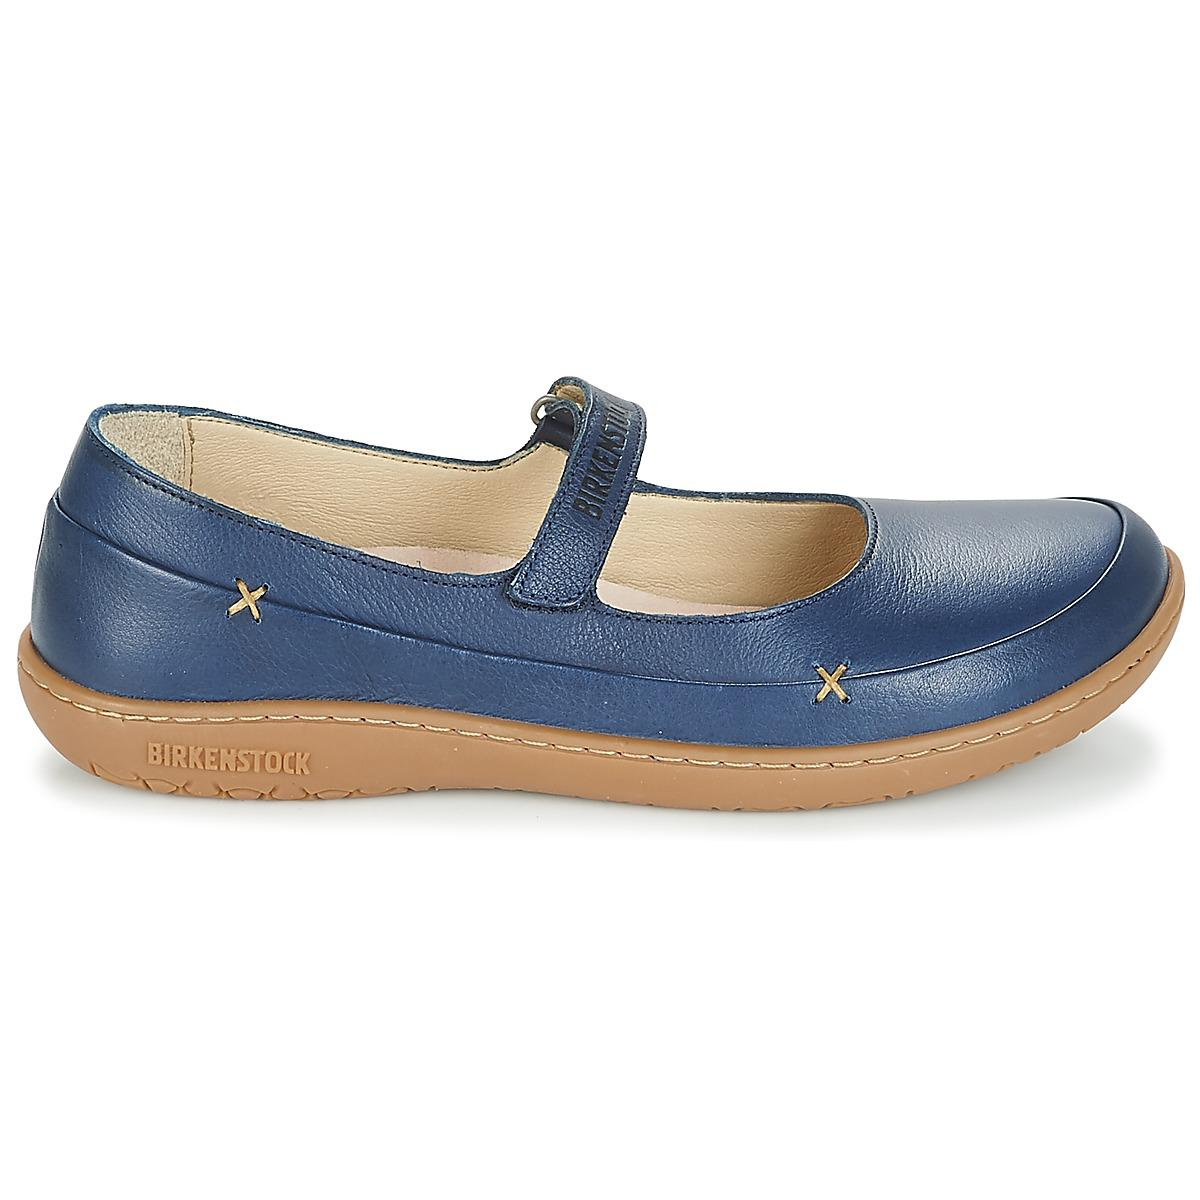 a3dccd13977d Birkenstock Iona Women s Casual Shoes In Blue in Blue - Save 30% - Lyst